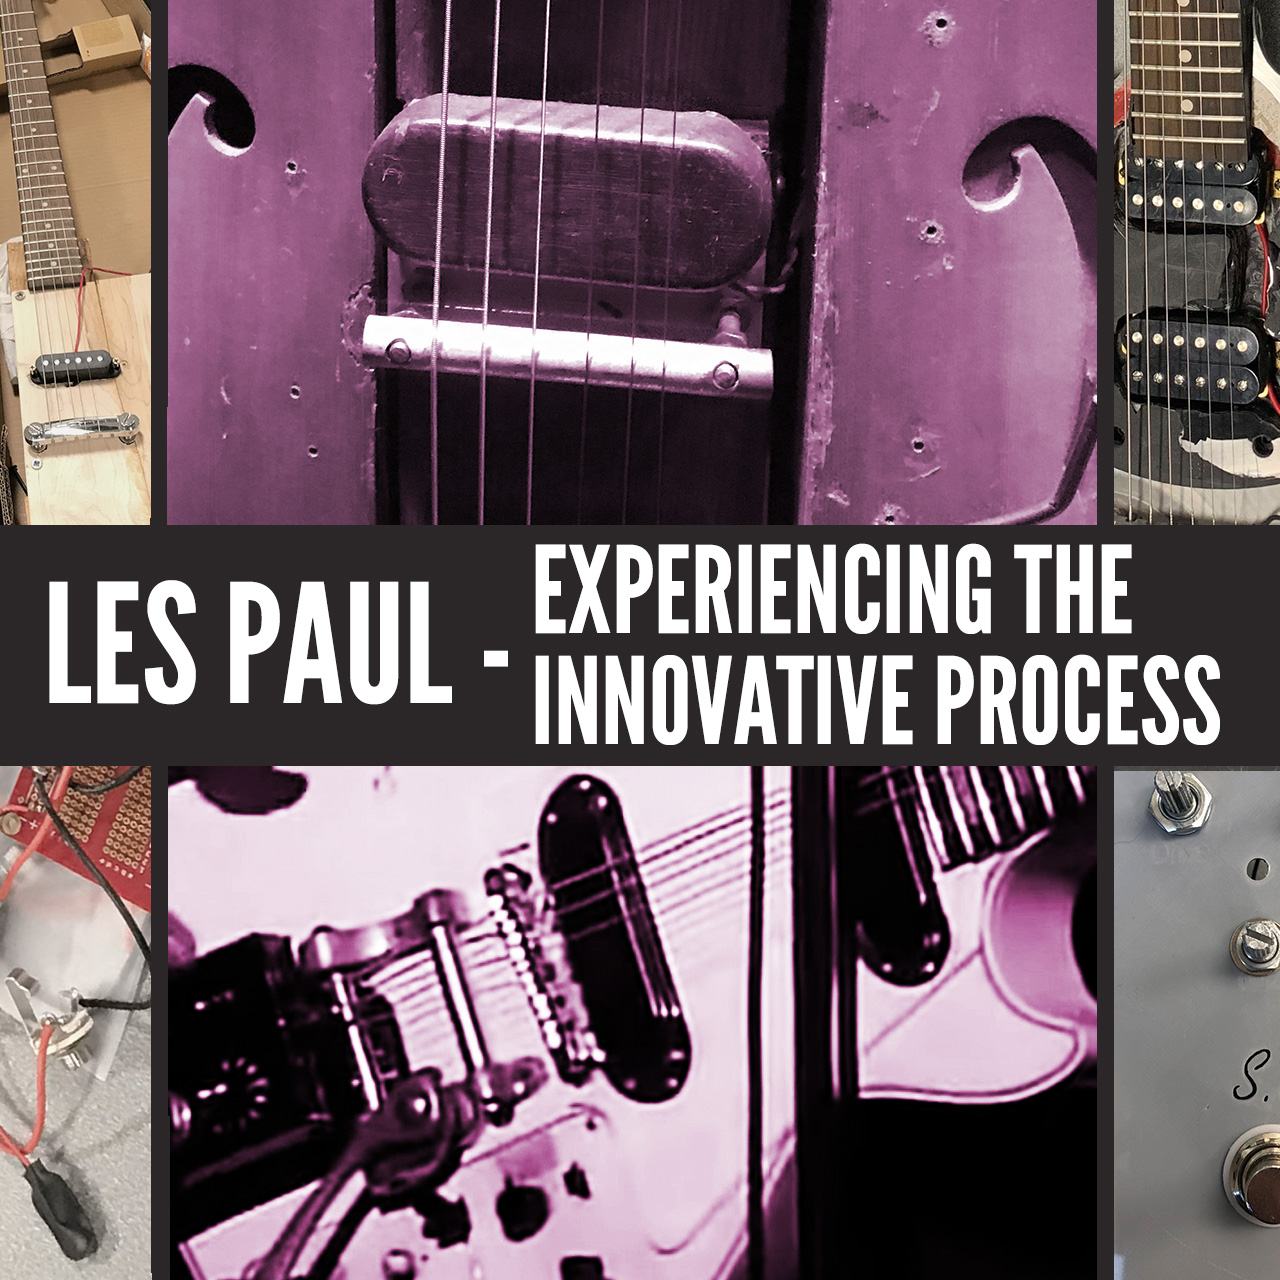 Les Paul Experiencing the Innovative Process